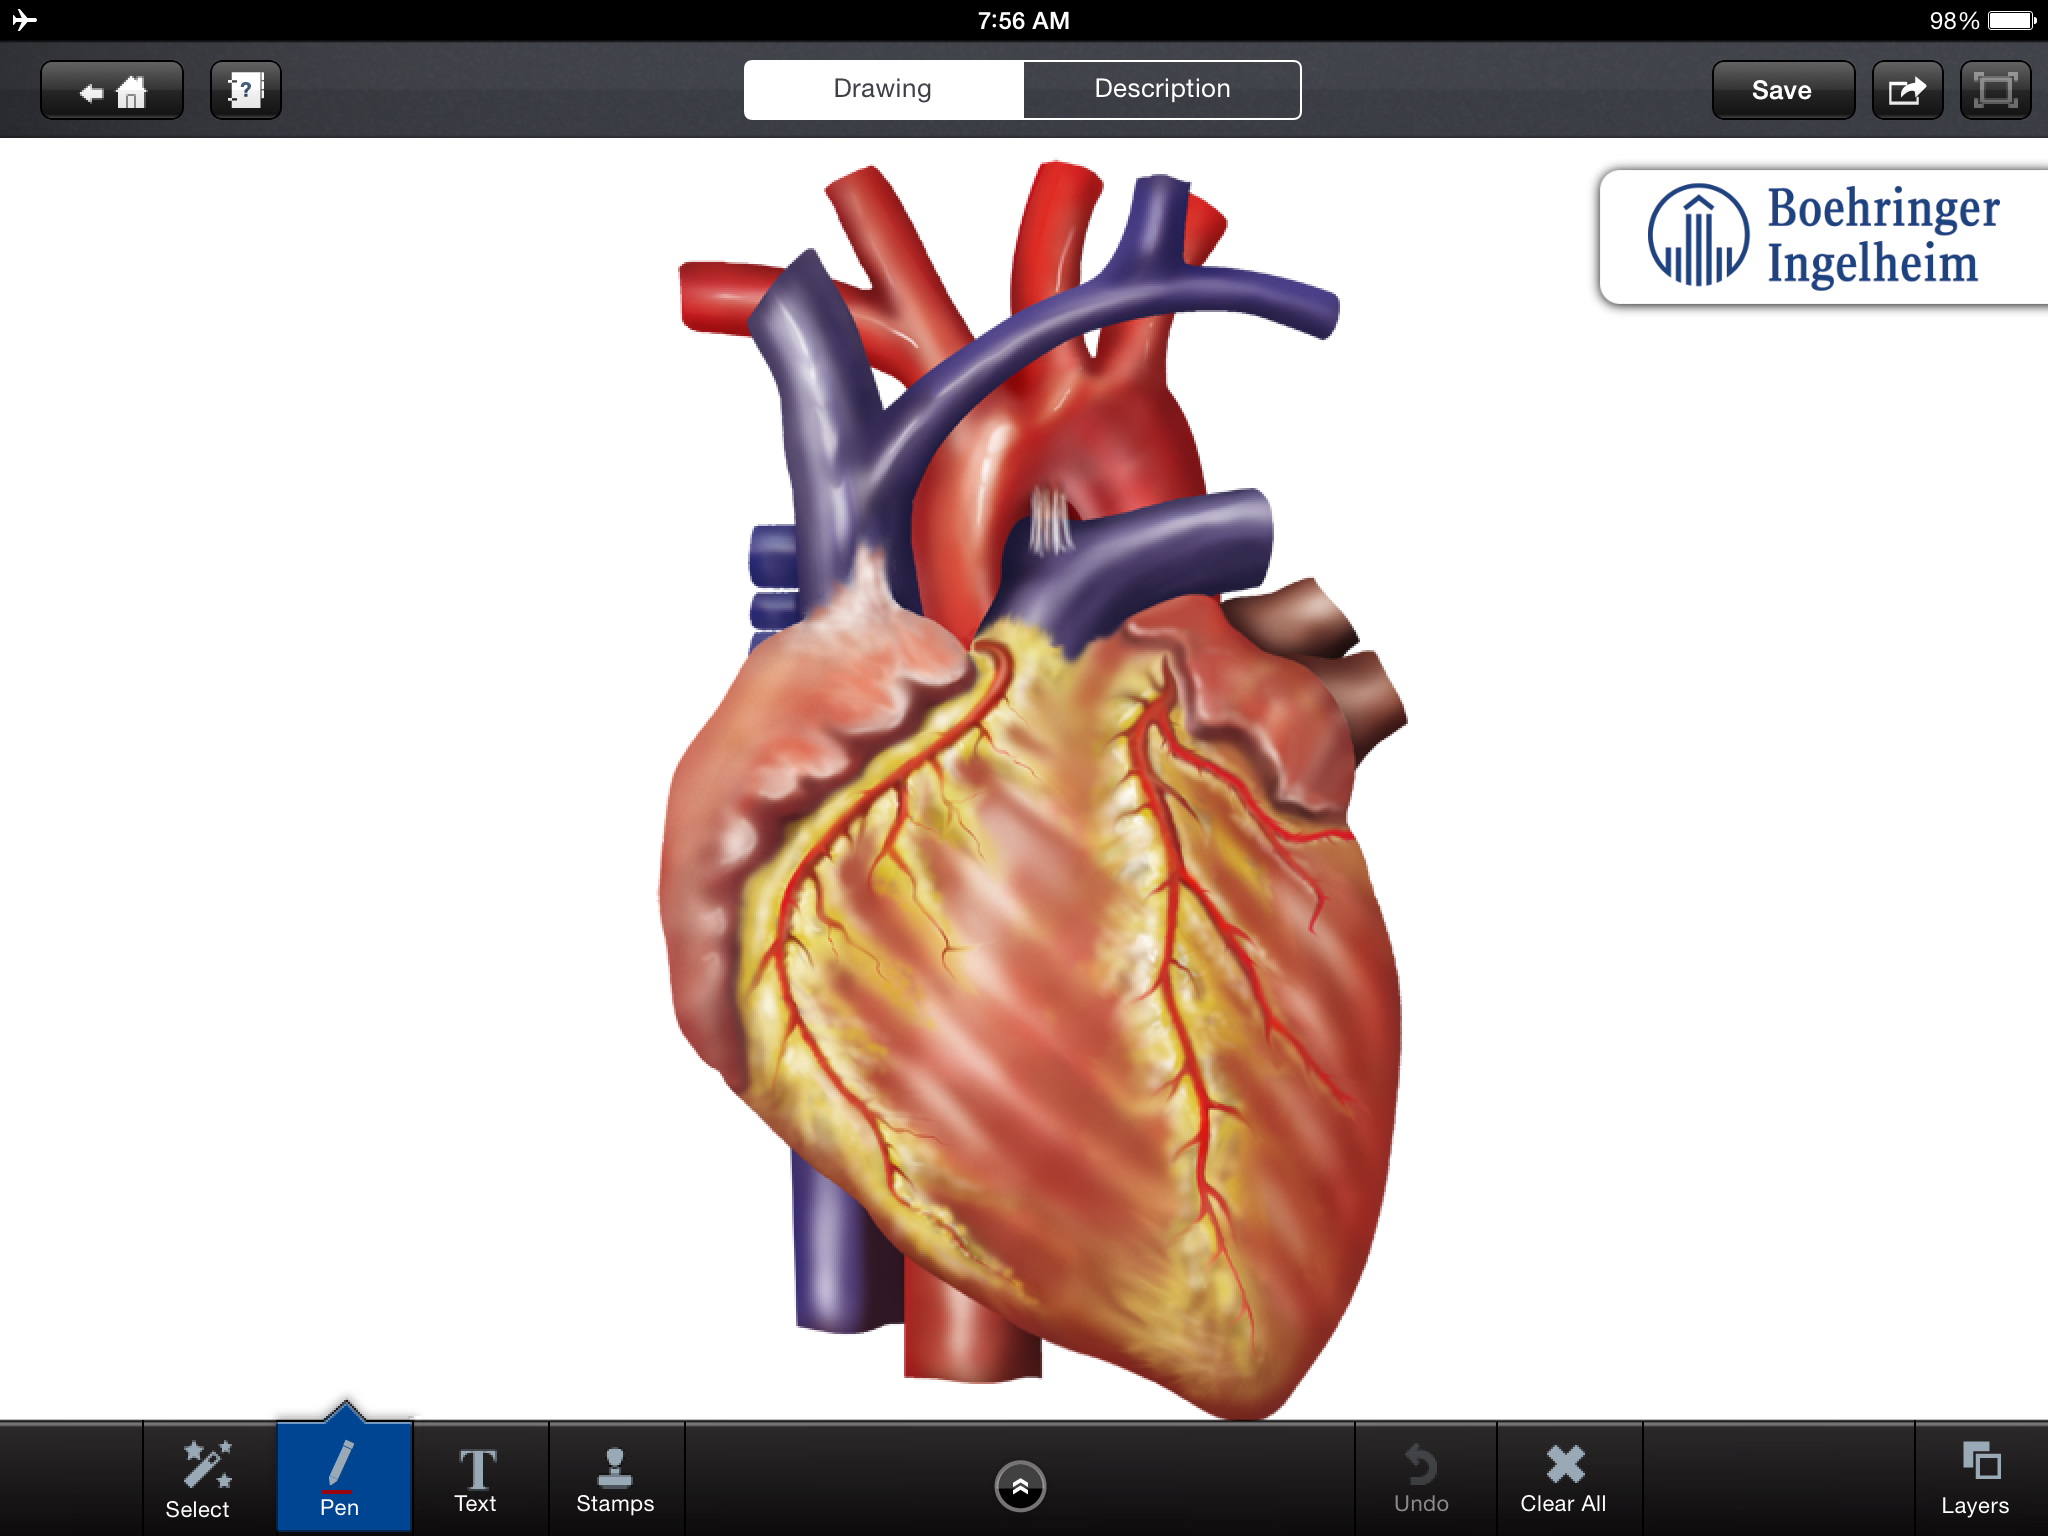 2048x1536 Three Best Apps For Discussing Heart Disease With Your Patients